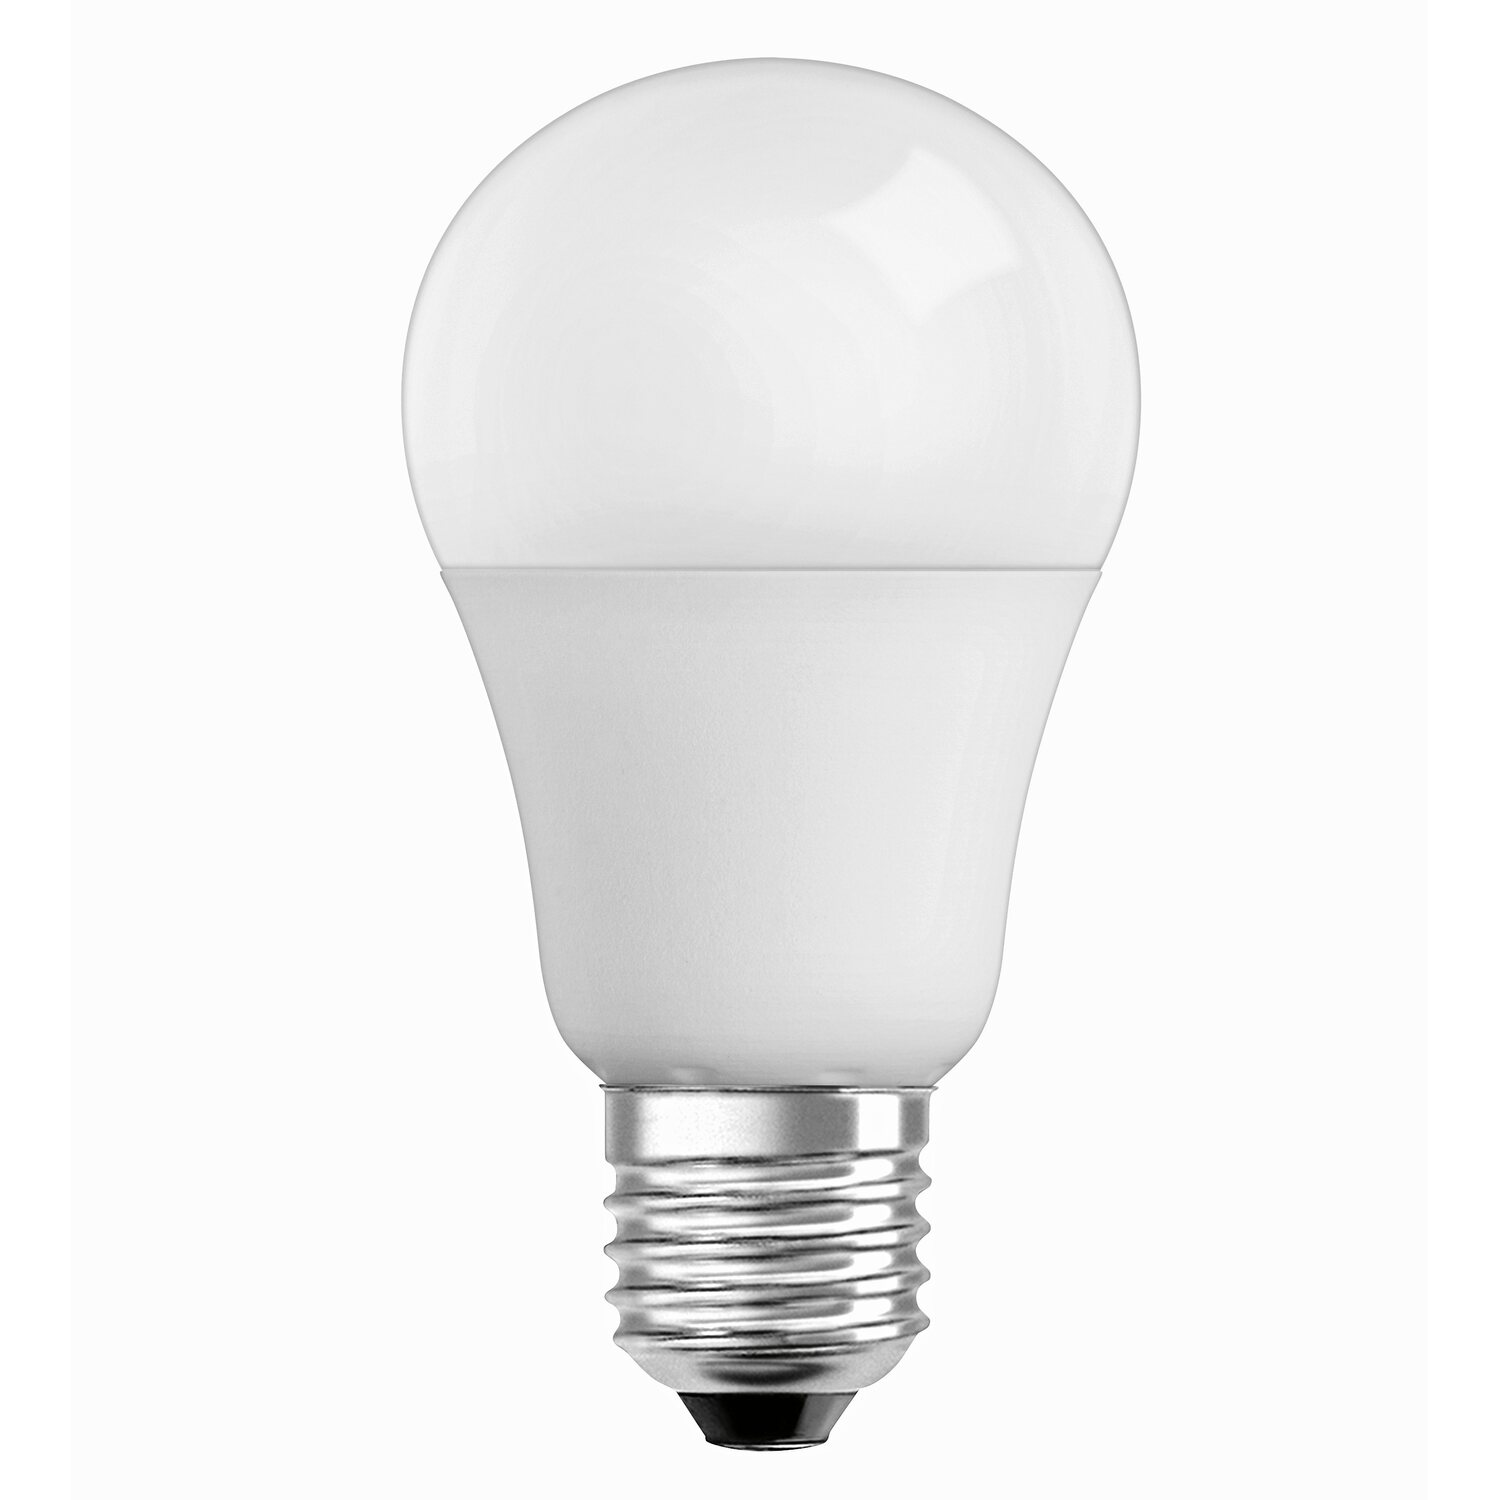 Osram E27 9W 827 LED-Lampe Superstar, matt, dimmbar